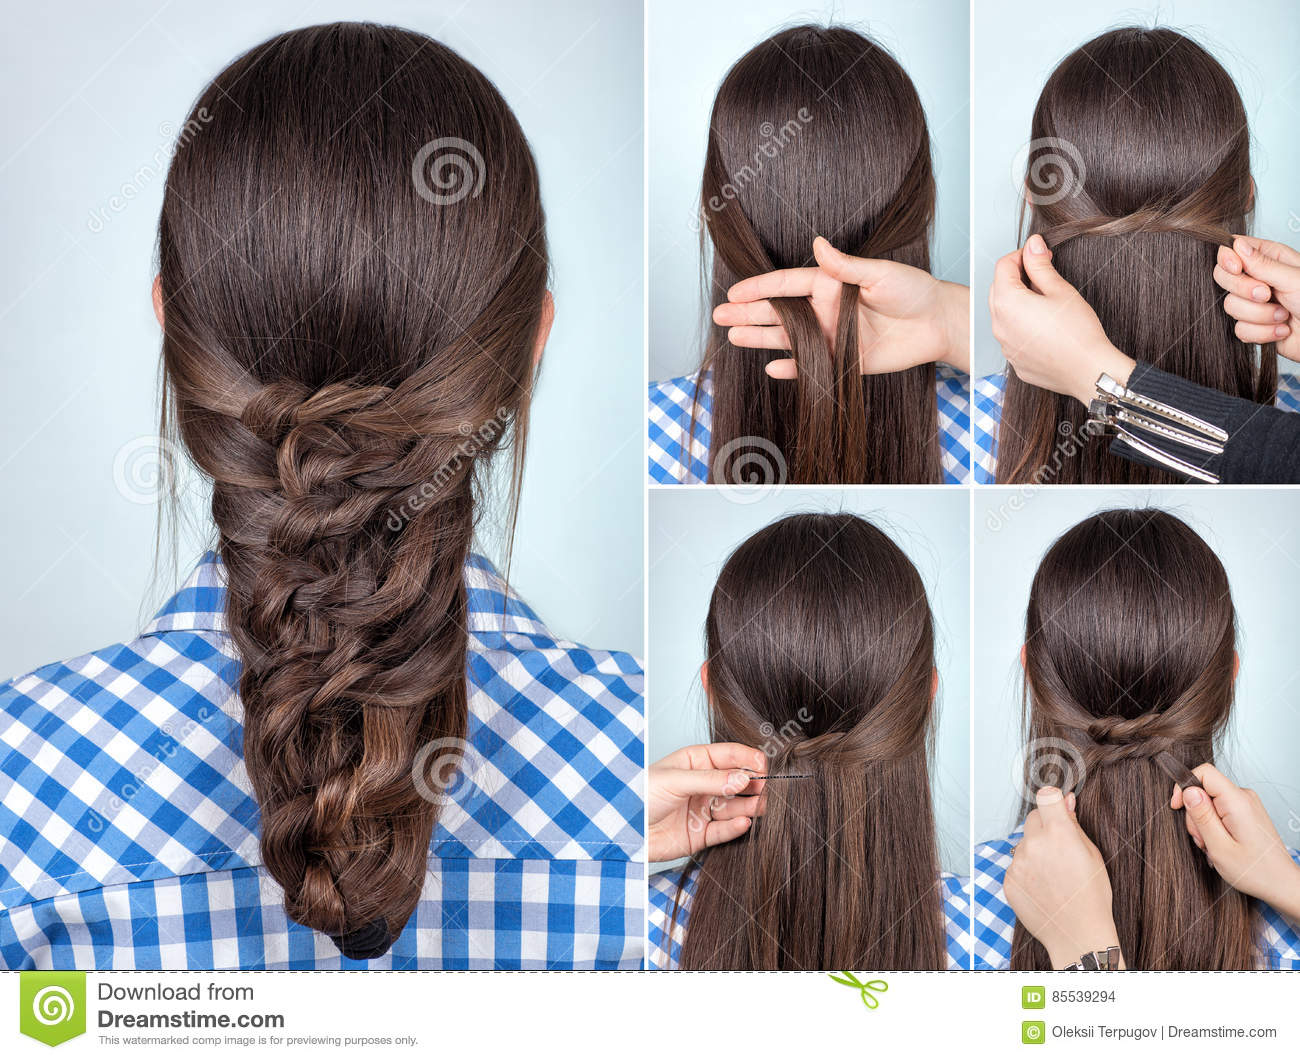 simple hairstyle tutorial stock photo - image: 85539294